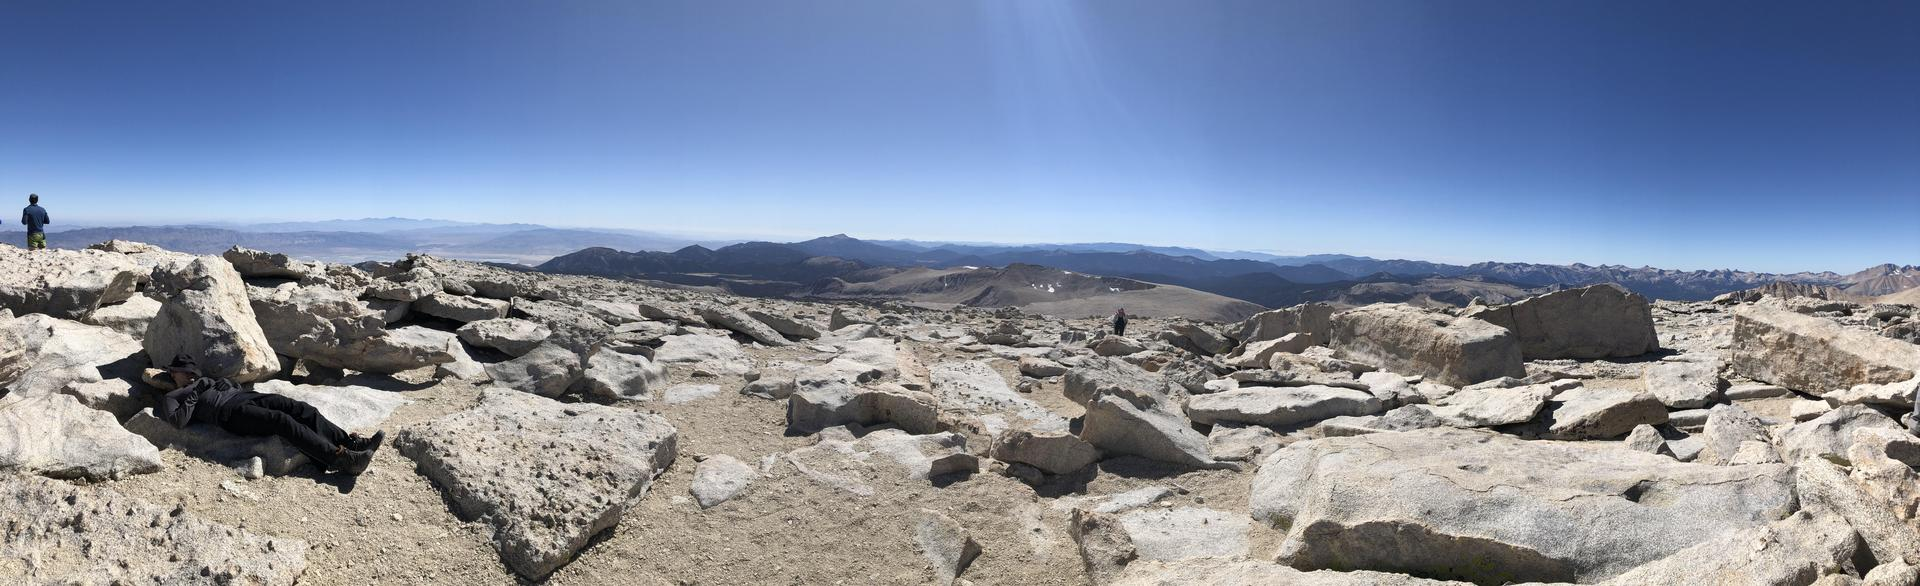 picture take.tn from the top of Mount Langley at over 14,000 ft